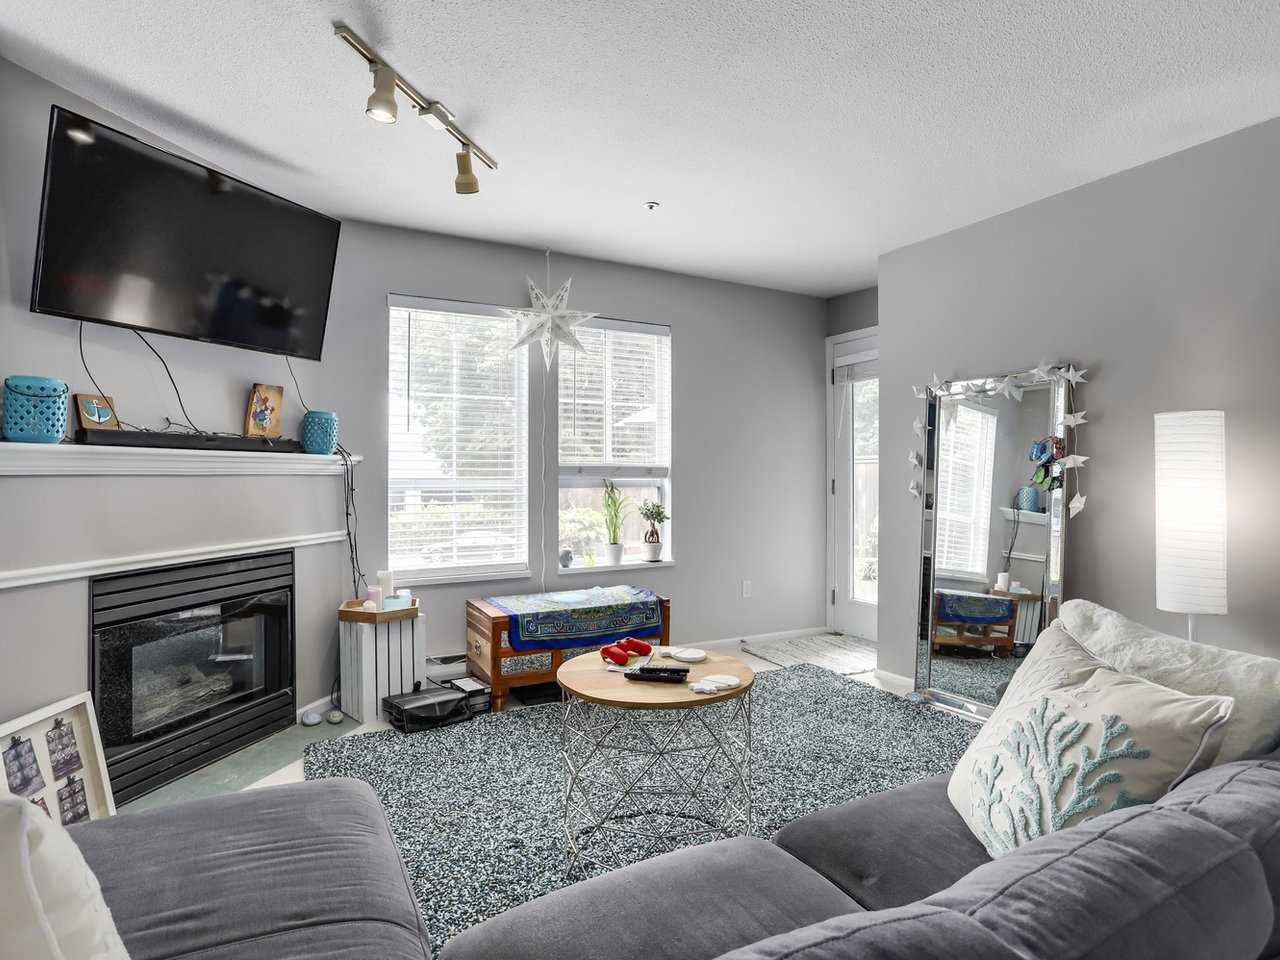 Photo 6: Photos: 107 295 SCHOOLHOUSE Street in Coquitlam: Maillardville Condo for sale : MLS®# R2286753